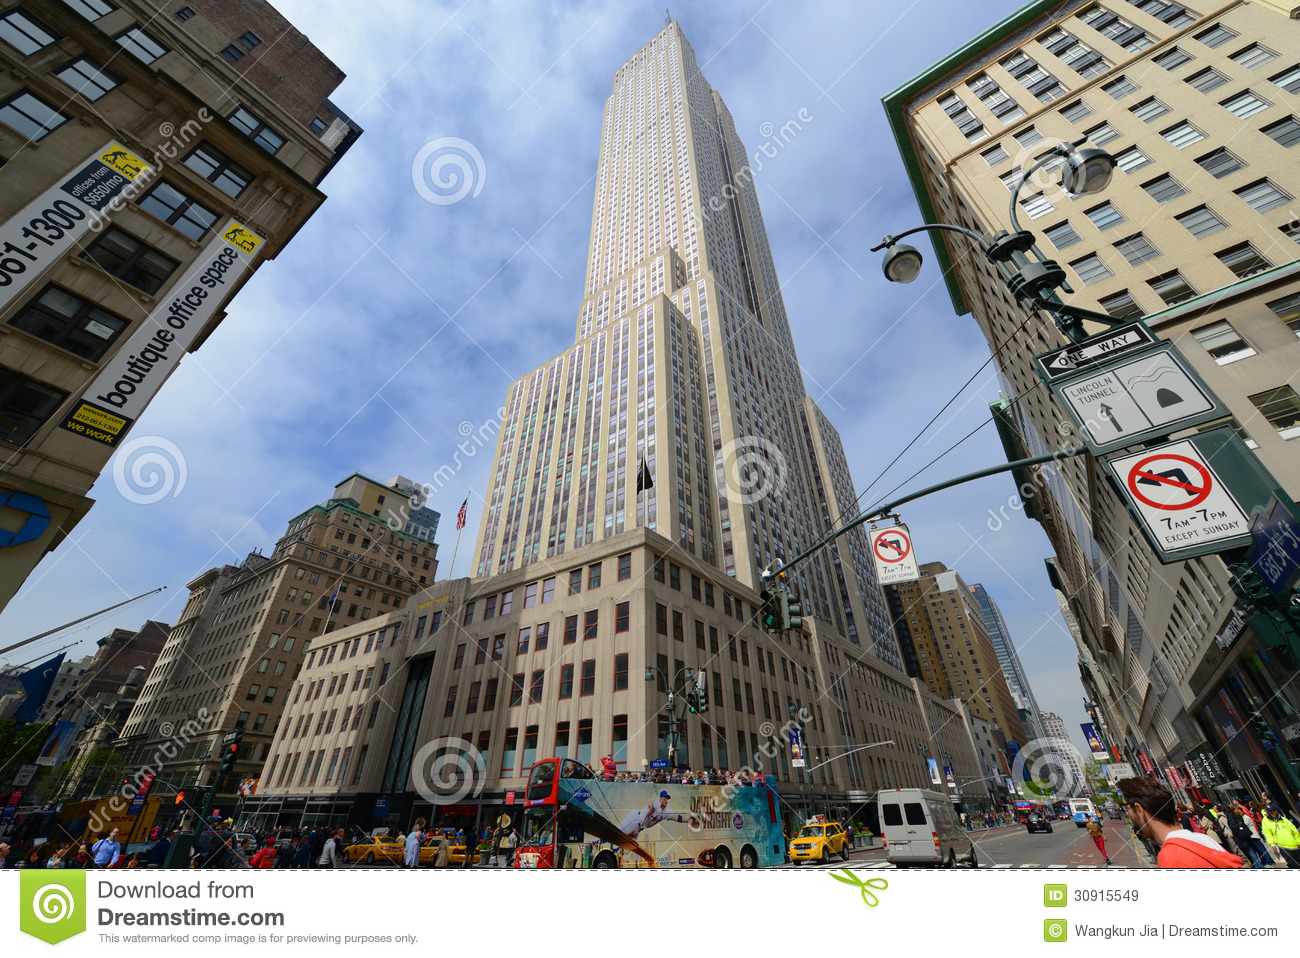 Image Result For New York Empire State Building Street View